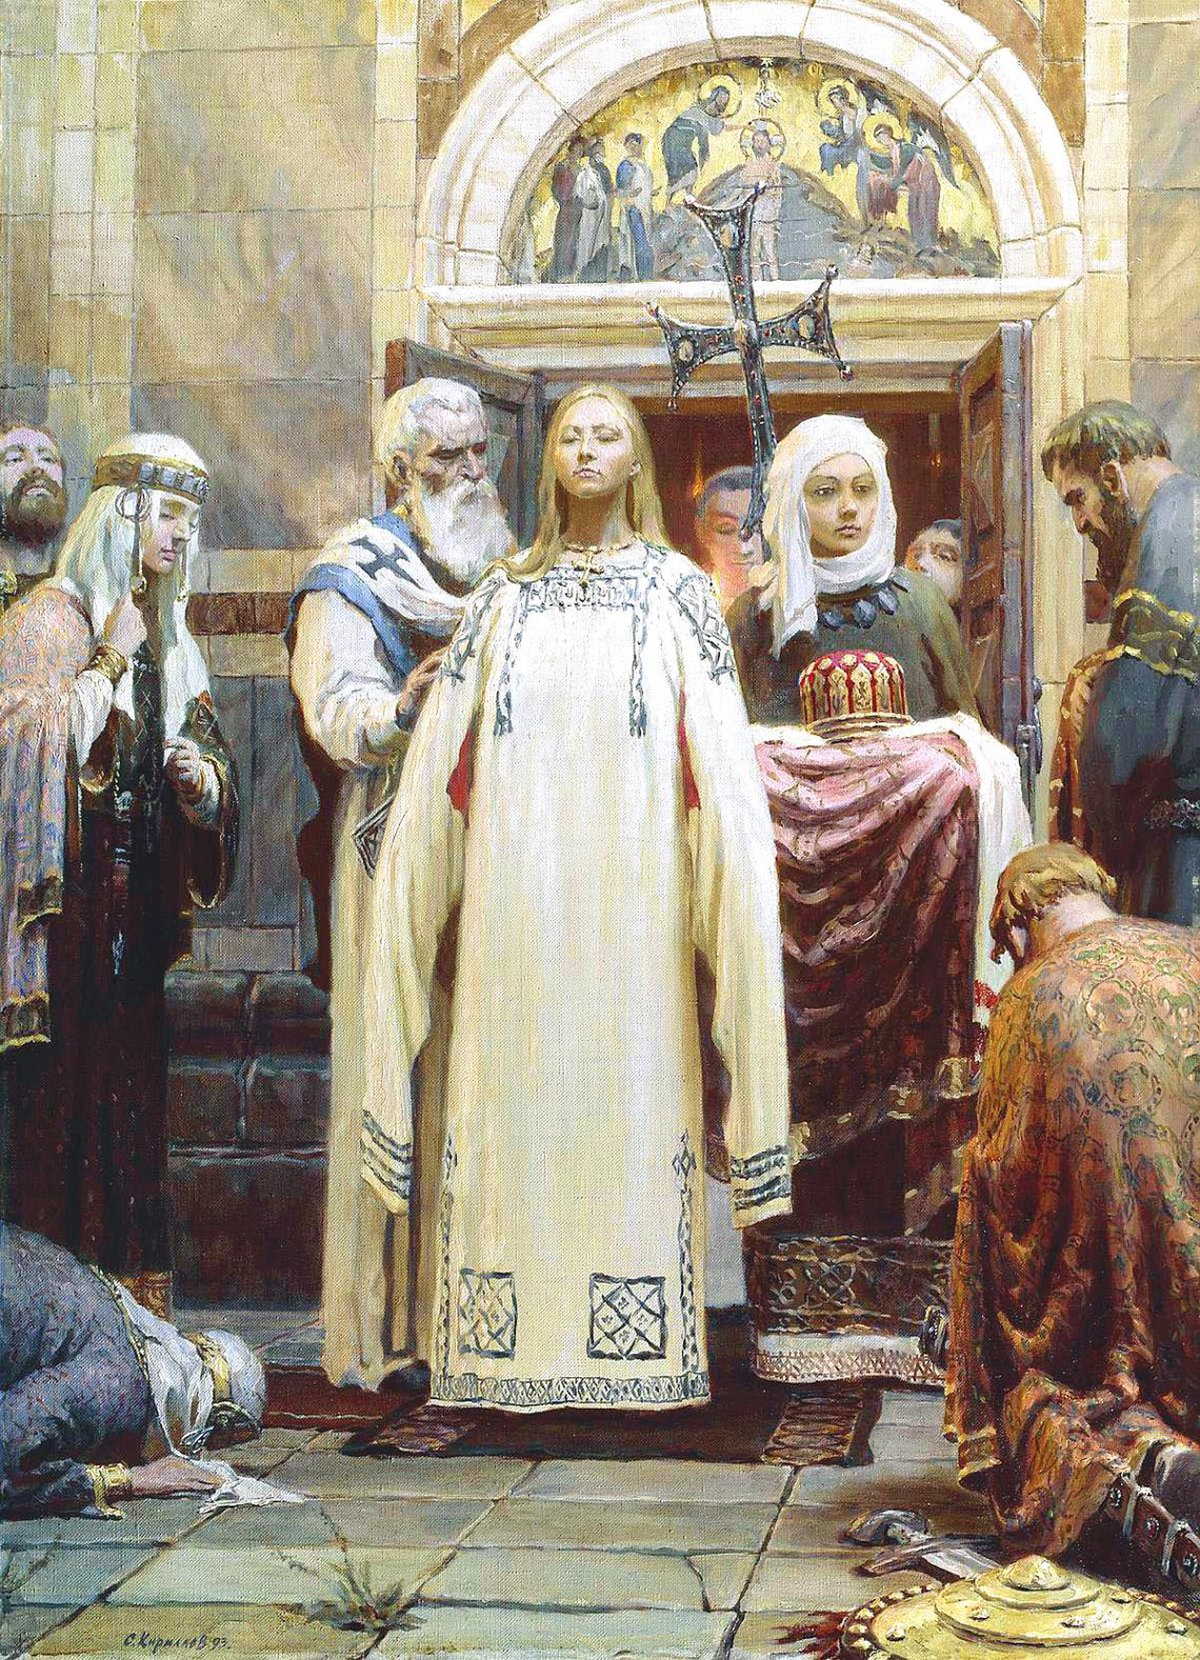 Sergei Kirillov. The Baptism of Grand Princess St Olga. Part 1 of the Triptych 'Holy Rus'. 1993